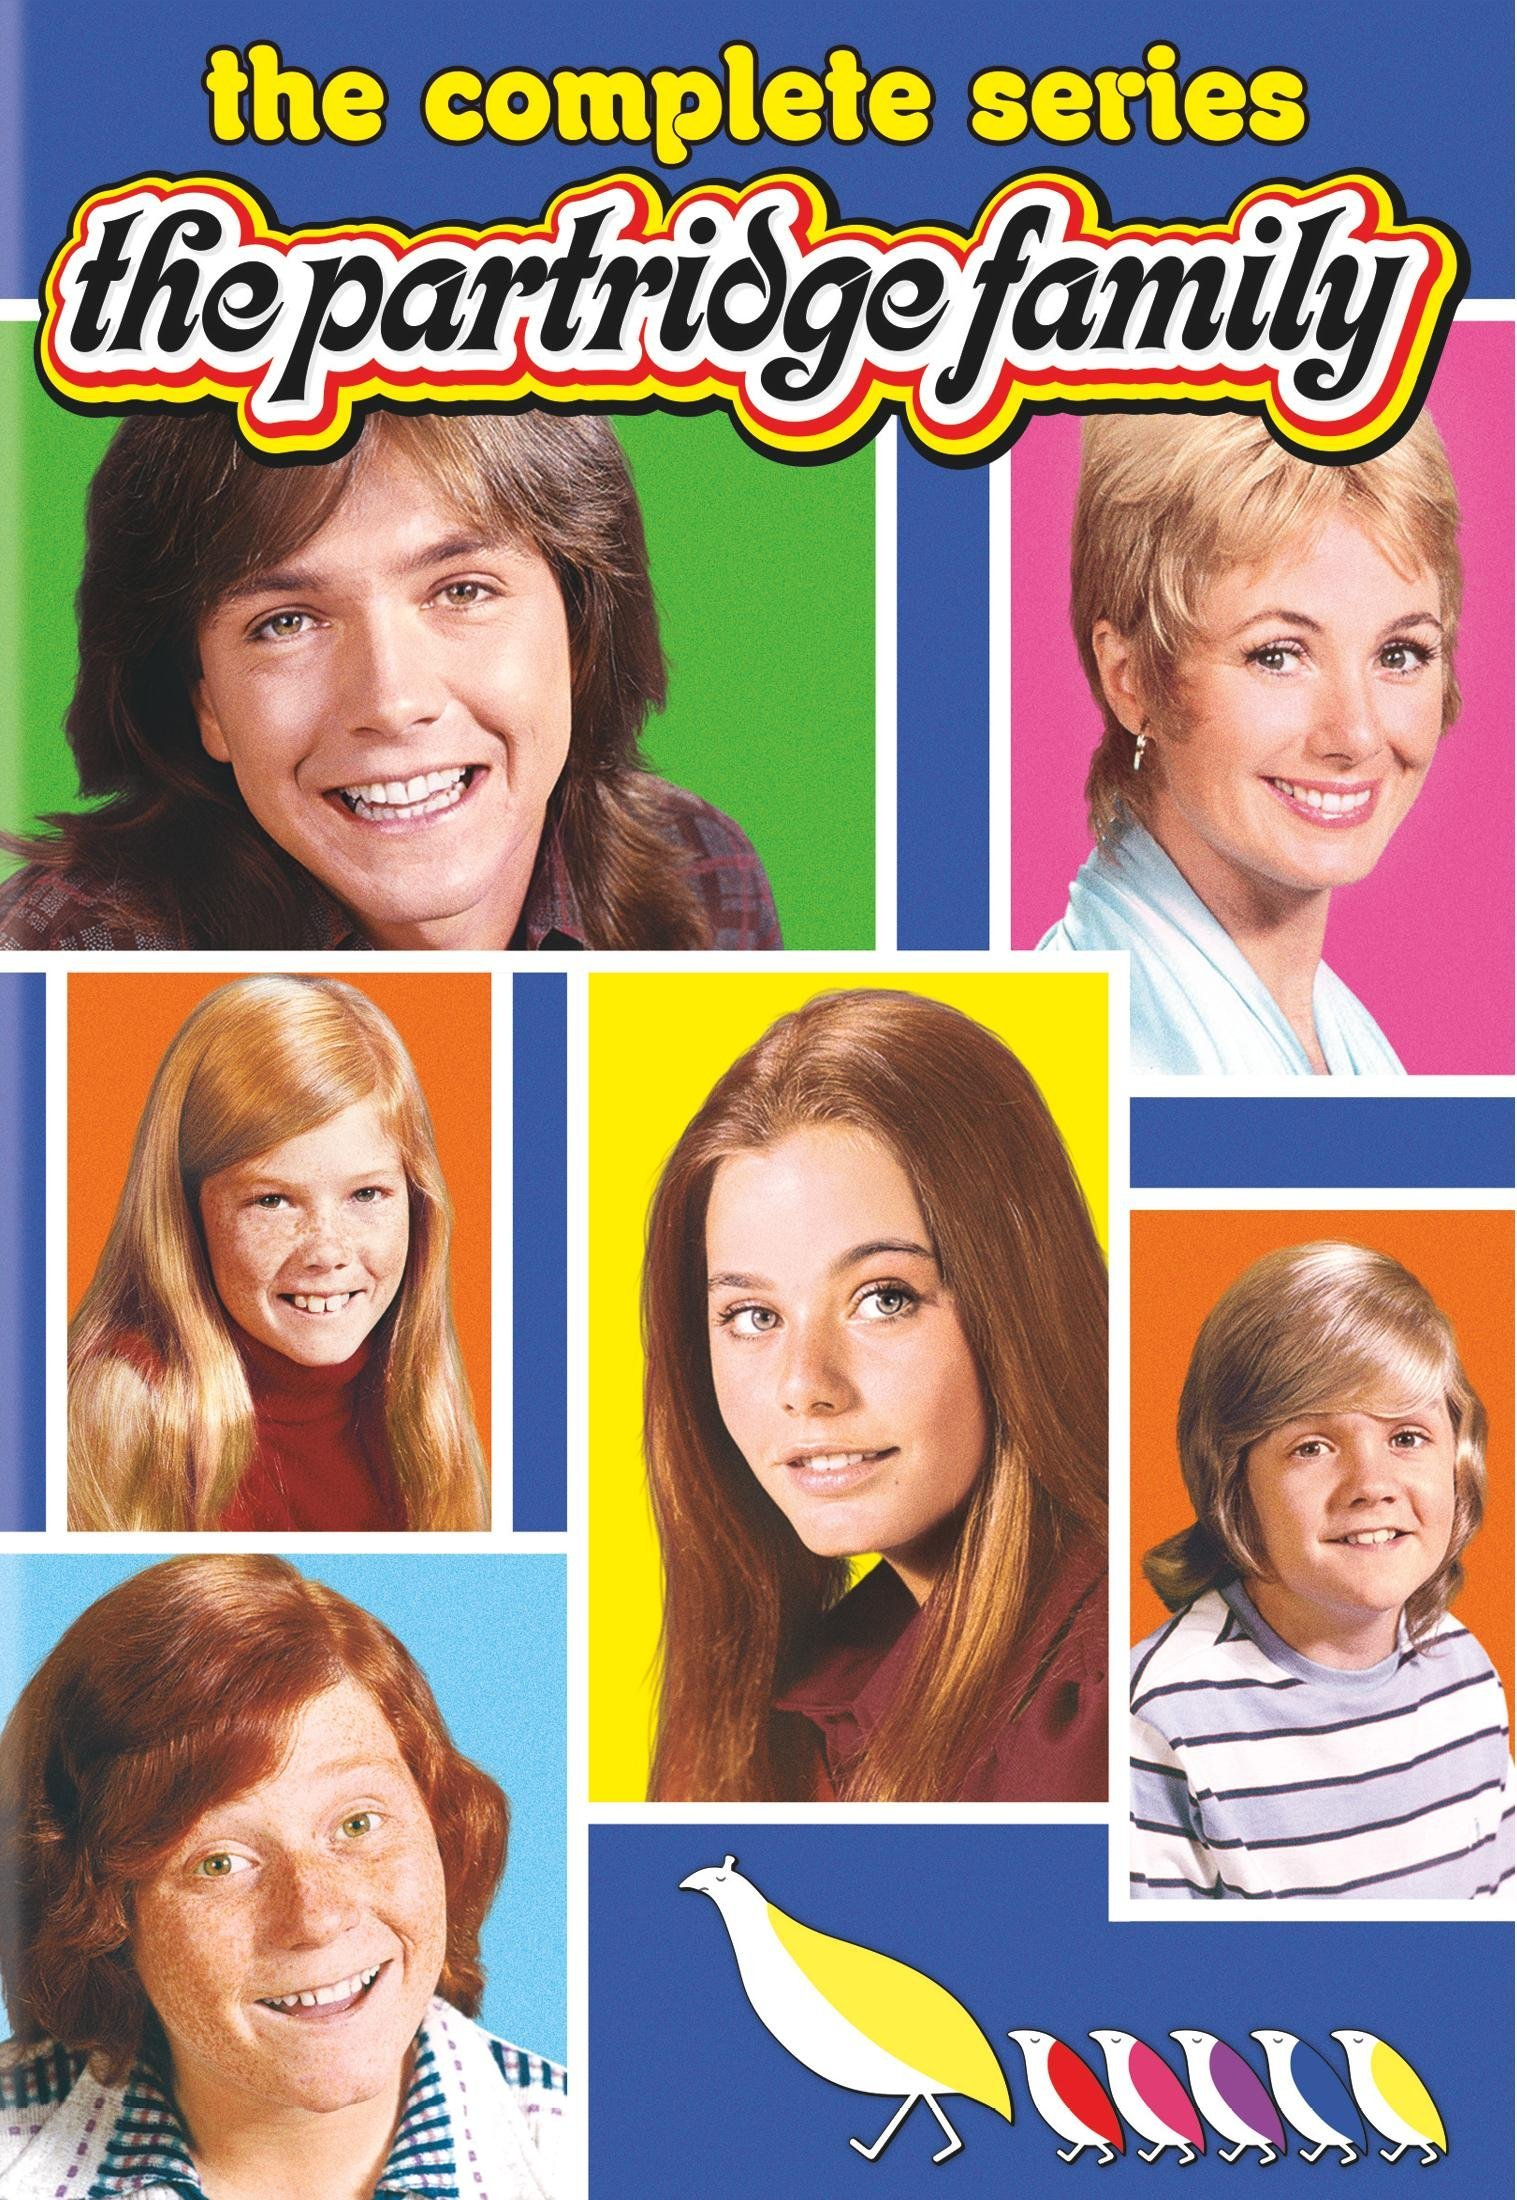 The Partridge Family: The Complete Series by Sony Pictures Home Entertainment